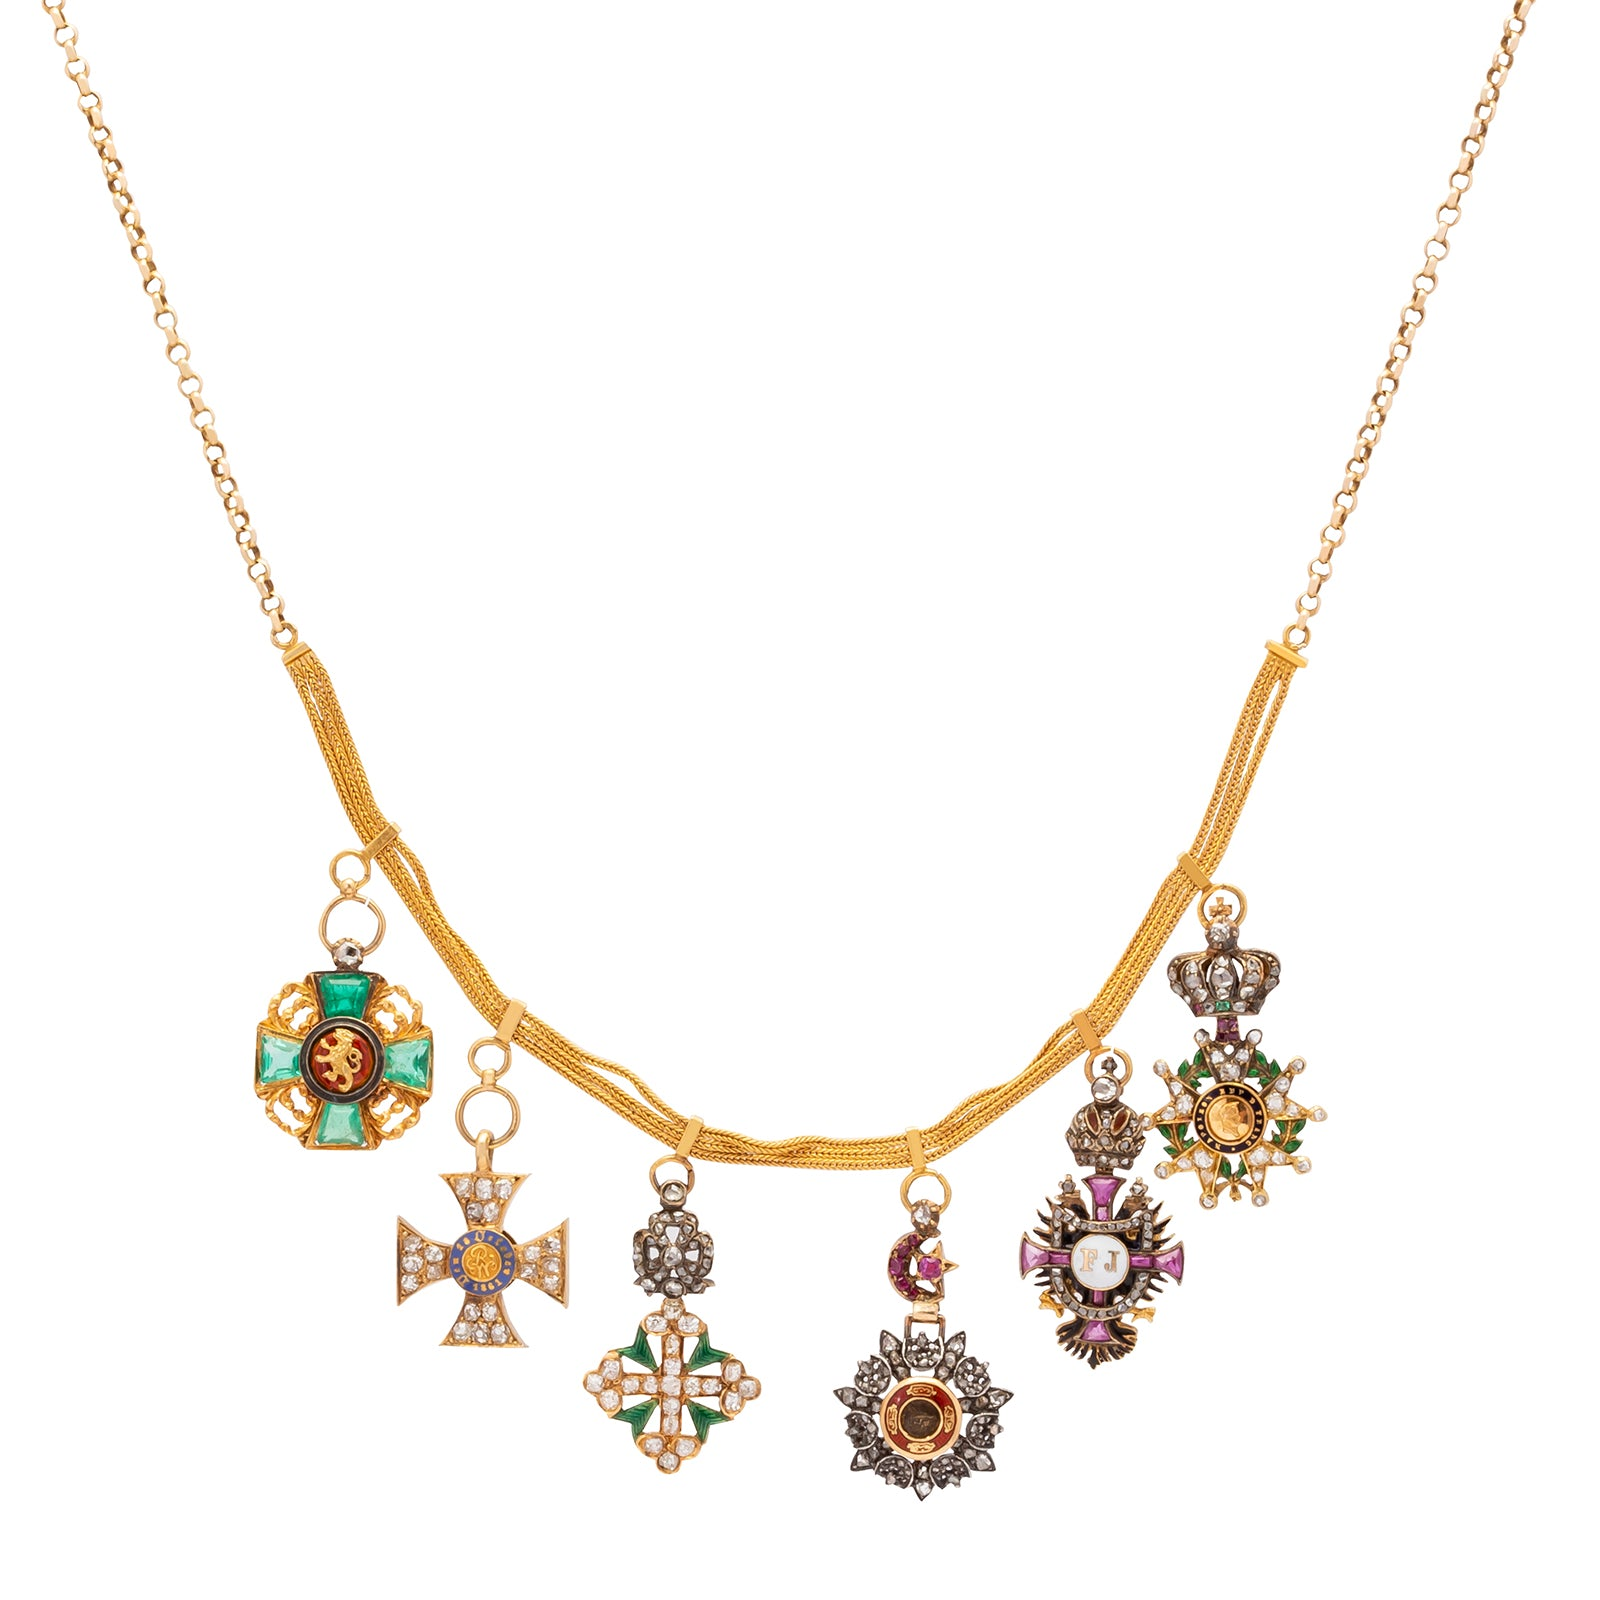 Colette Vintage Multi Mini Medals Necklace - Necklaces - Broken English Jewelry